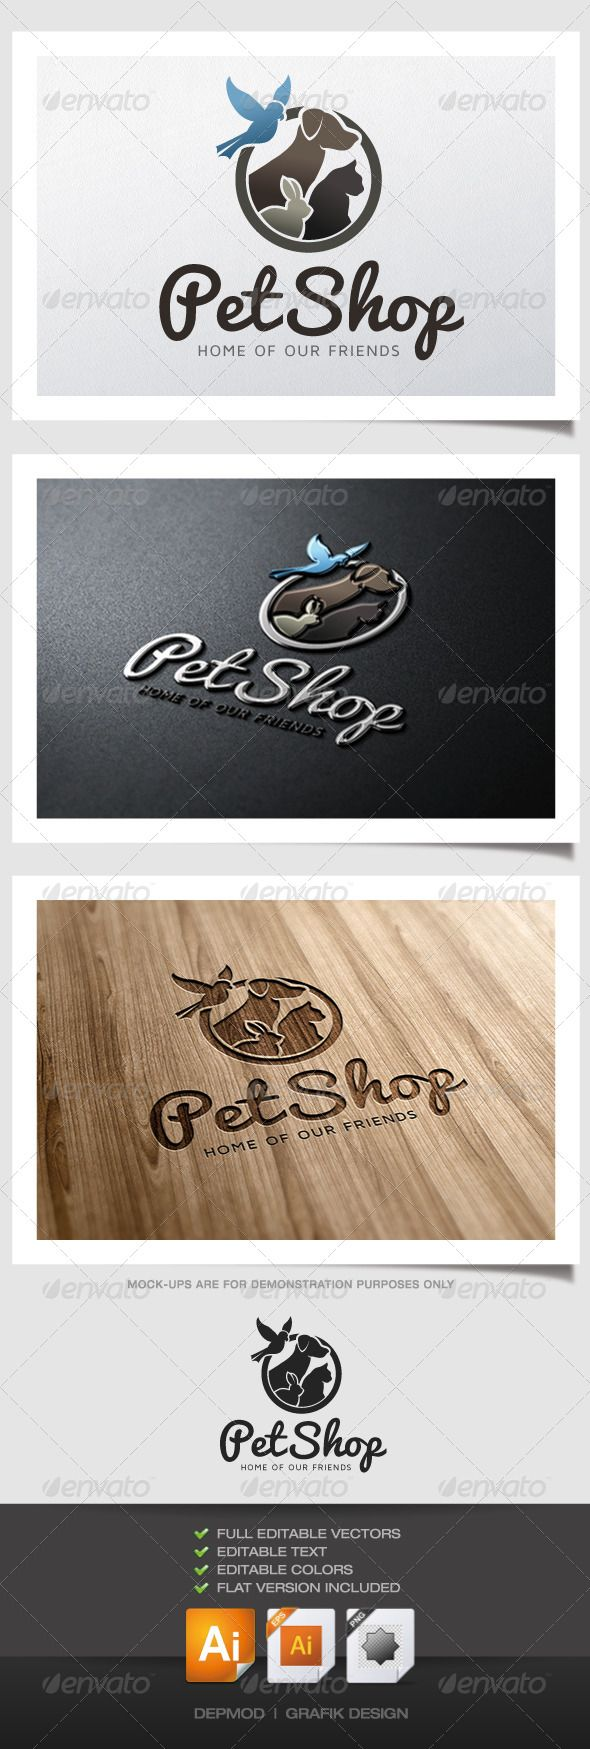 Pet Shop Logo V.02  #GraphicRiver         Logo of a cat, dog, bird and rabbit. Can be used for many kind of project. Full vectors, this logo can be easily resize and colors can be changed to fit your colors project. Flat version for print also included. The font used is in a download file in the package.